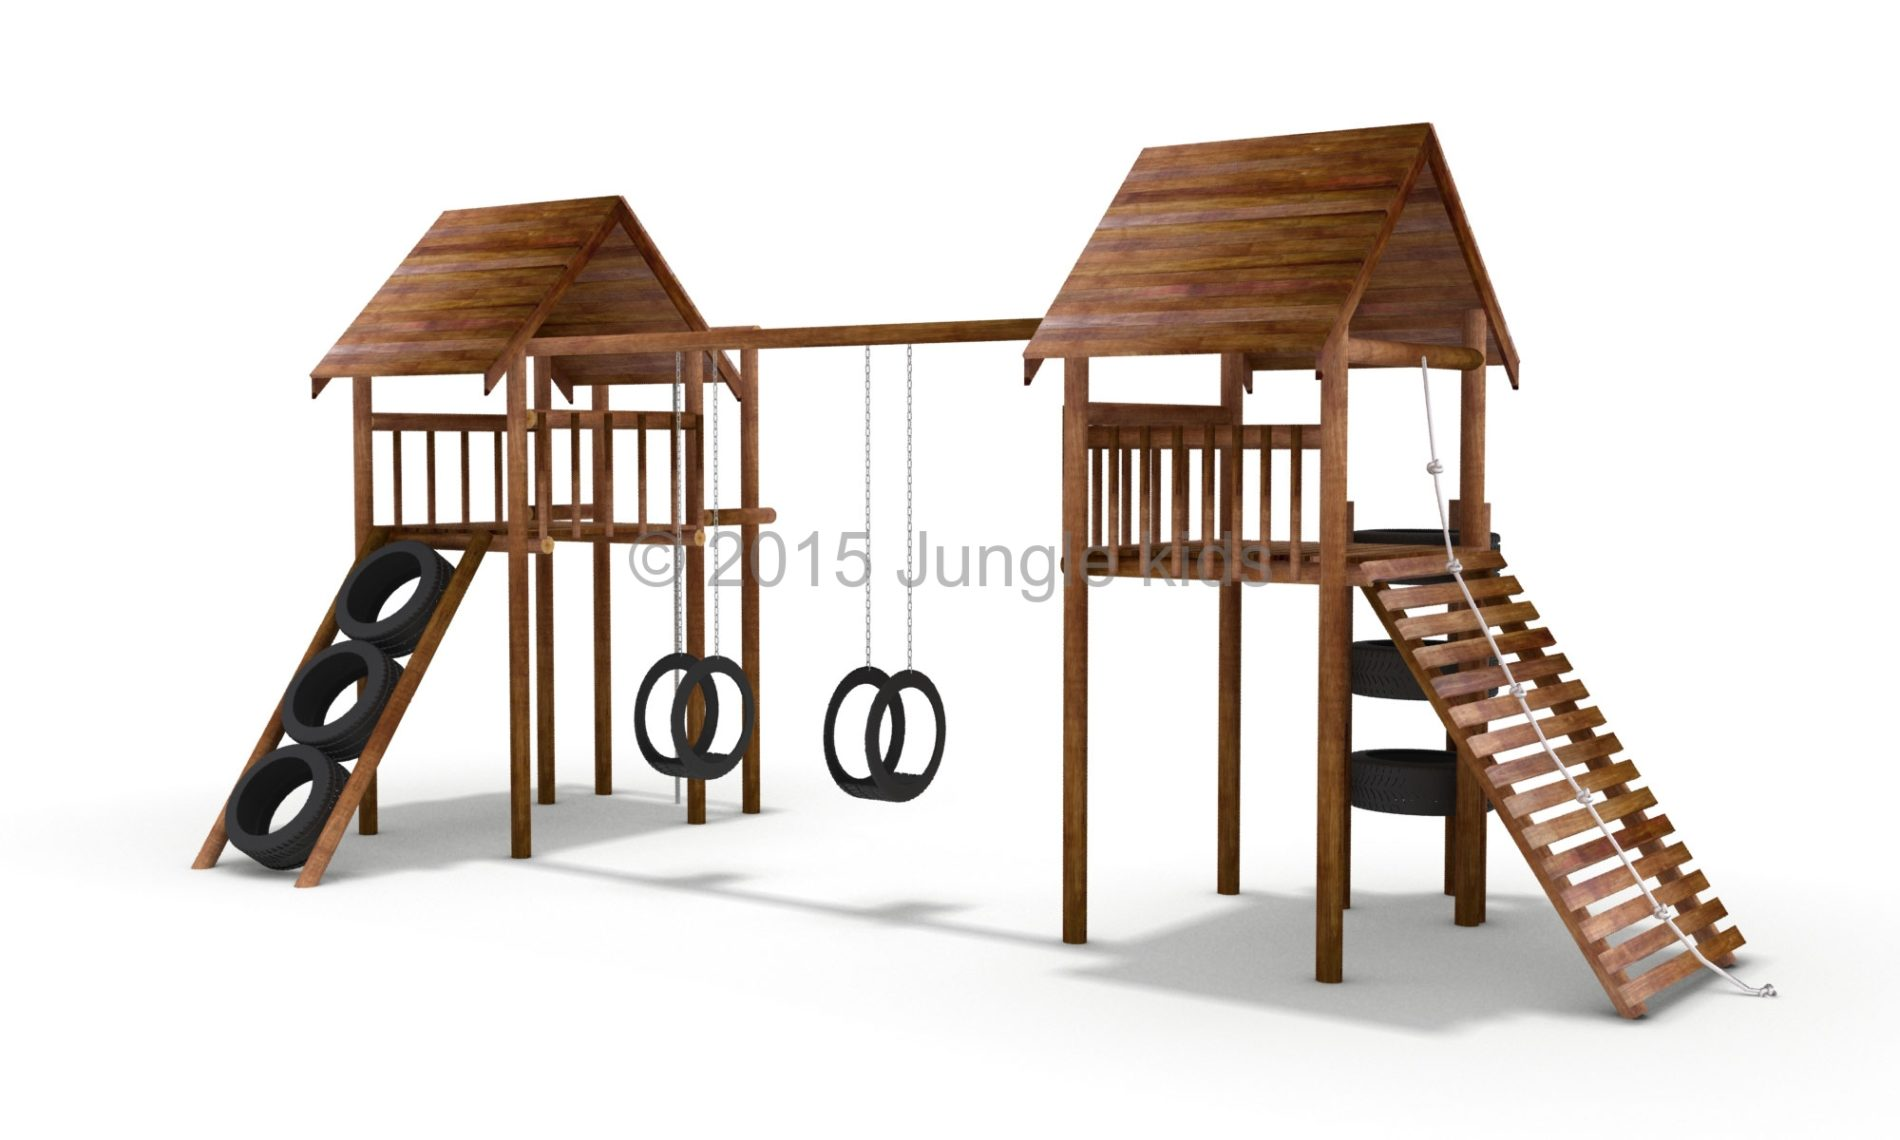 No 2 Jungle Gym Jungle Kids